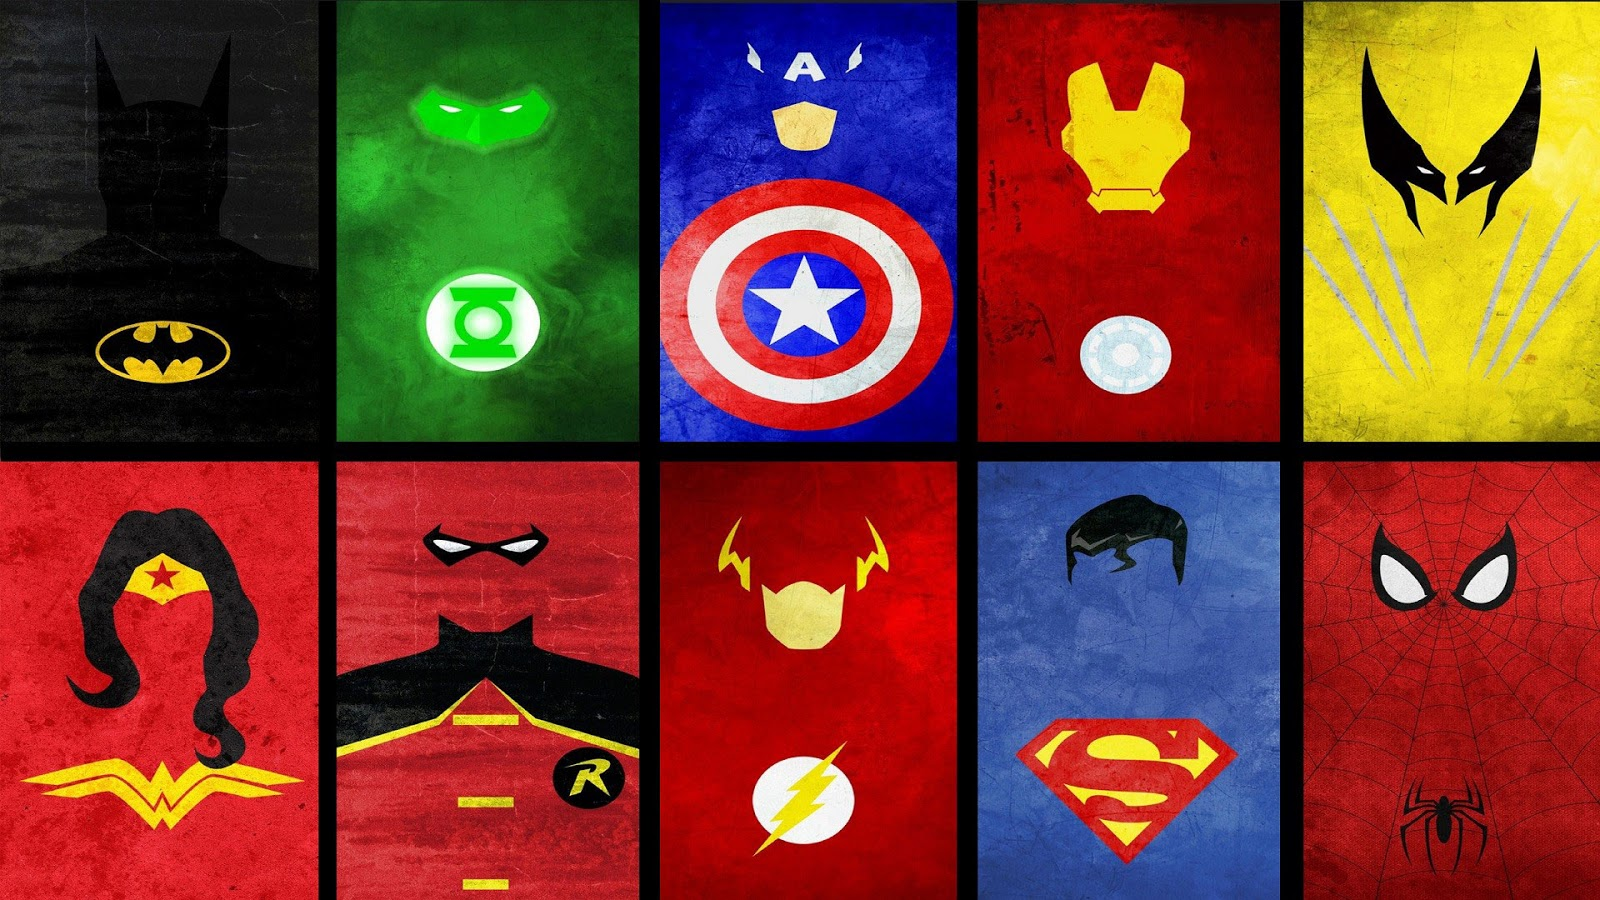 Super Heroes HD Wallpaper   HD Wallpapers   9to5Wallpapers 1600x900